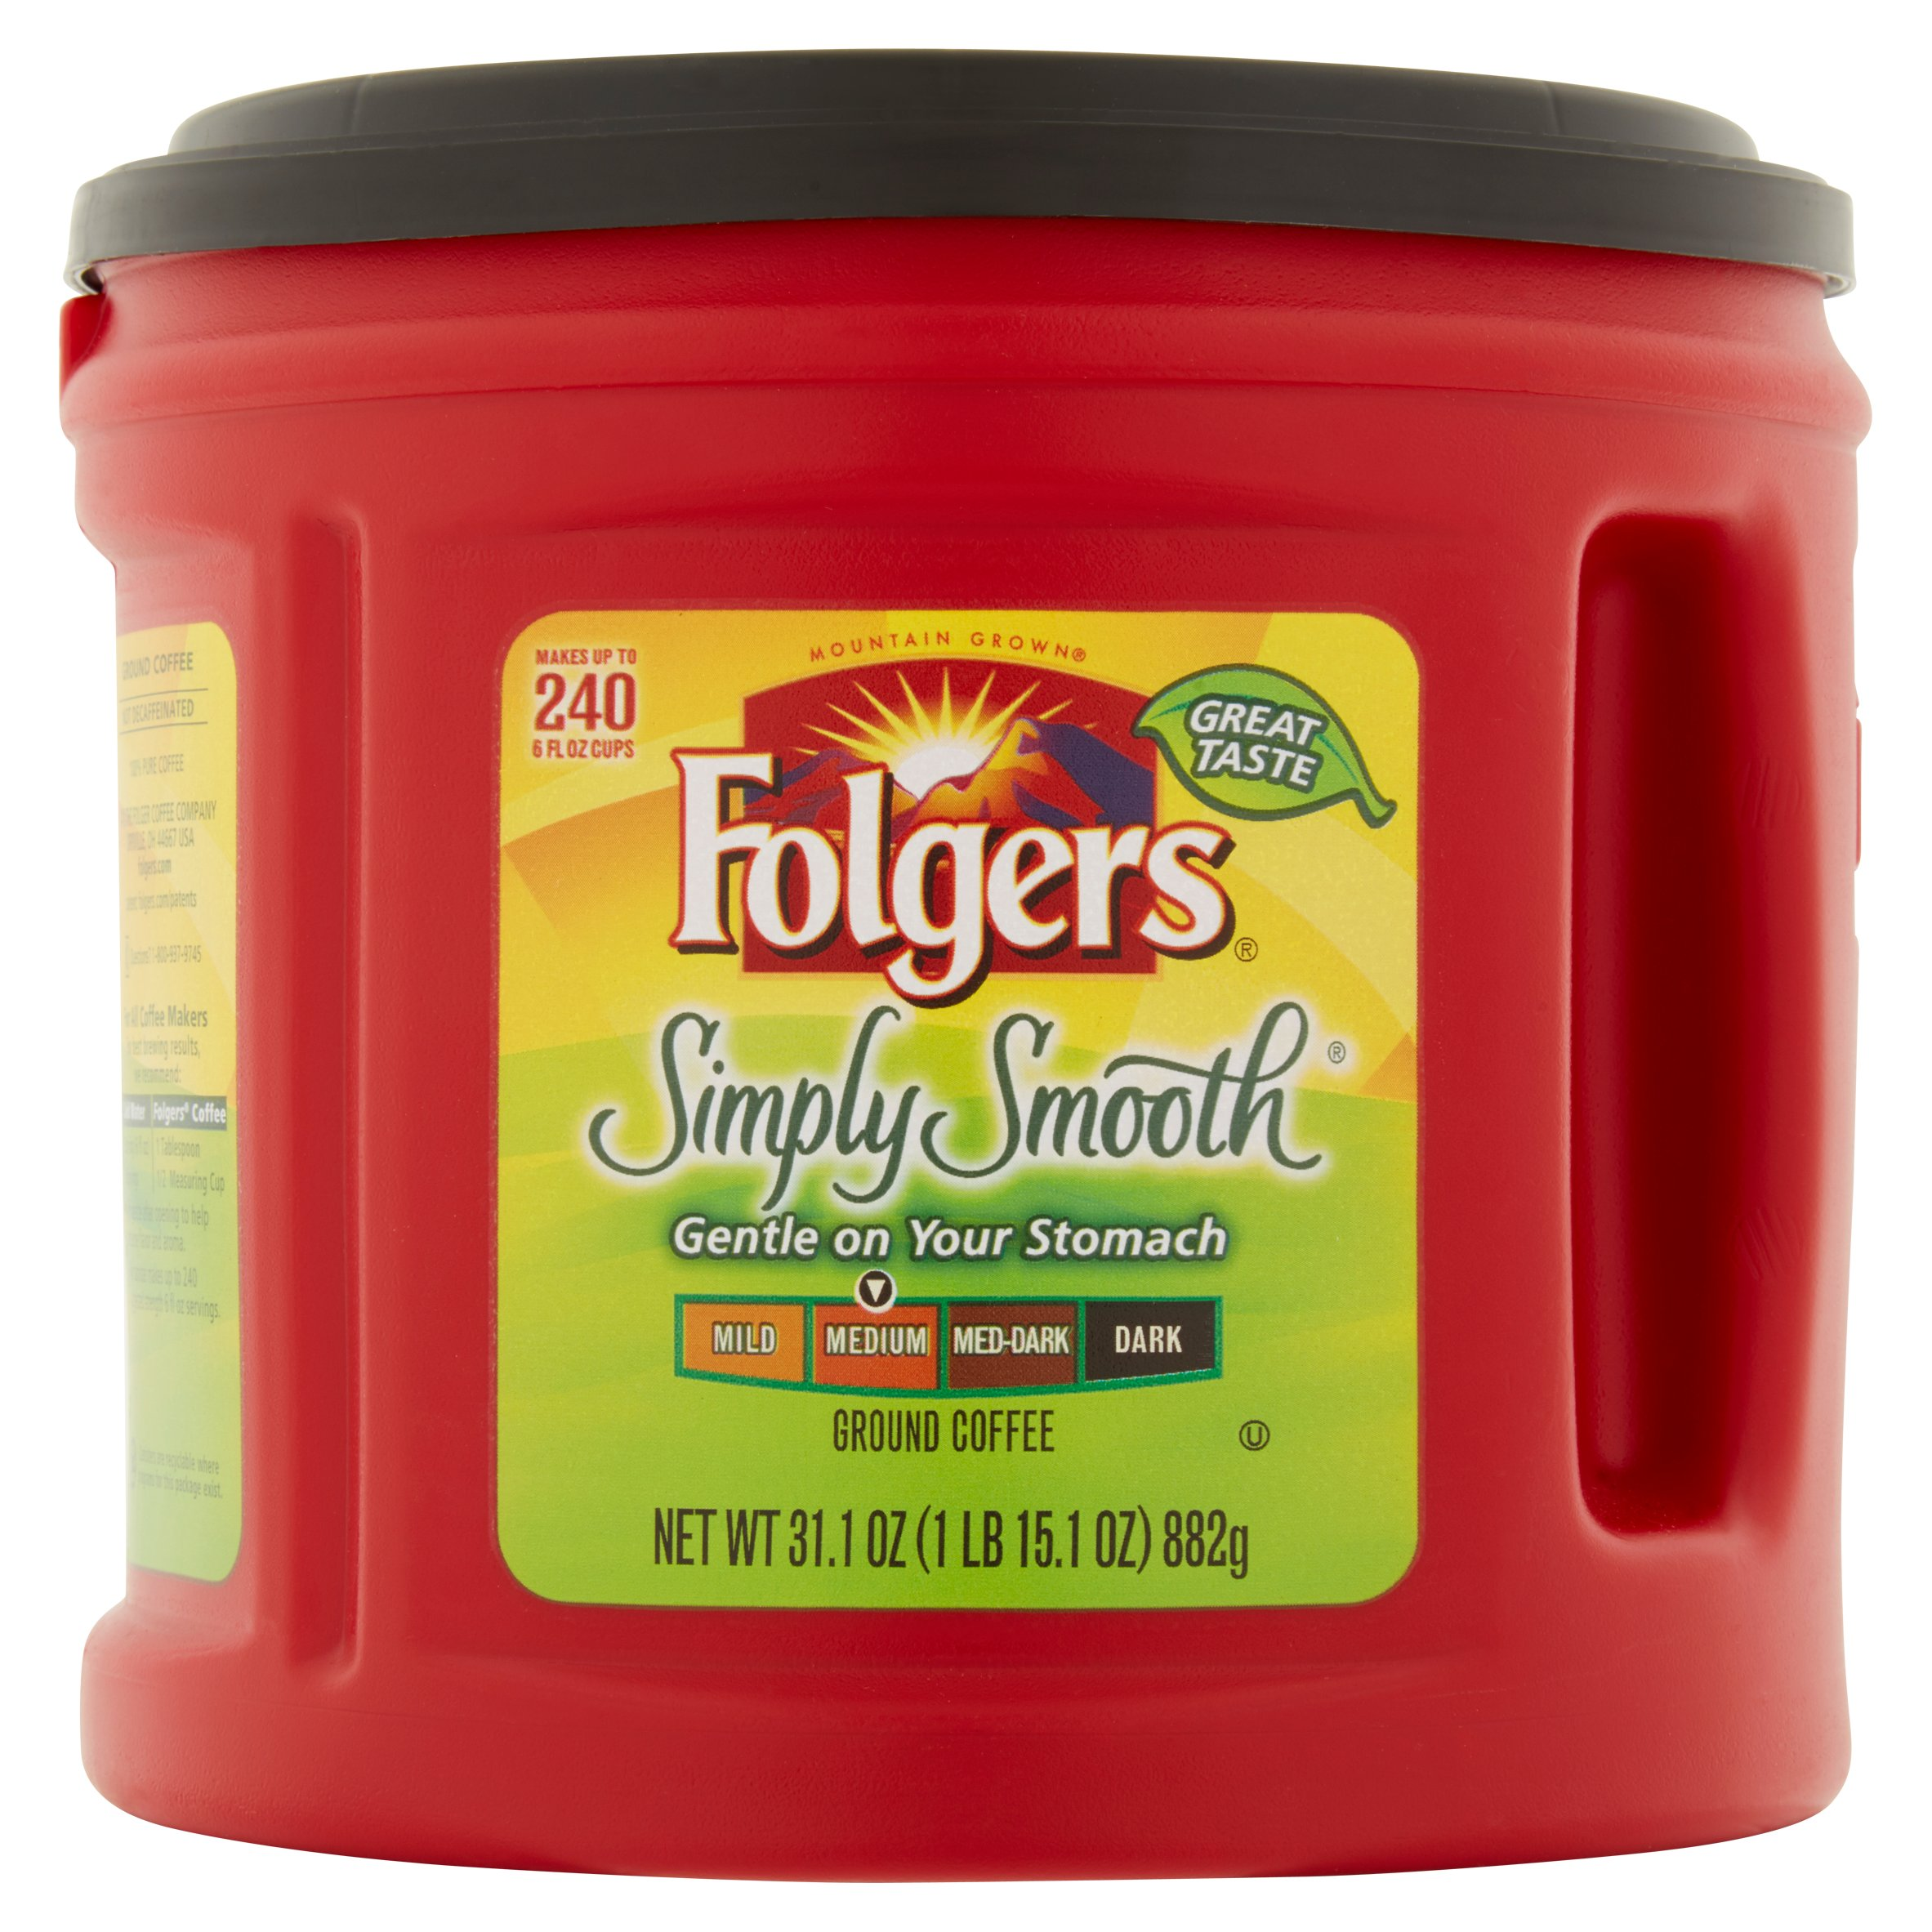 Folgers Mountain Grown Simply Smooth Medium Ground Coffee, 31.1 oz